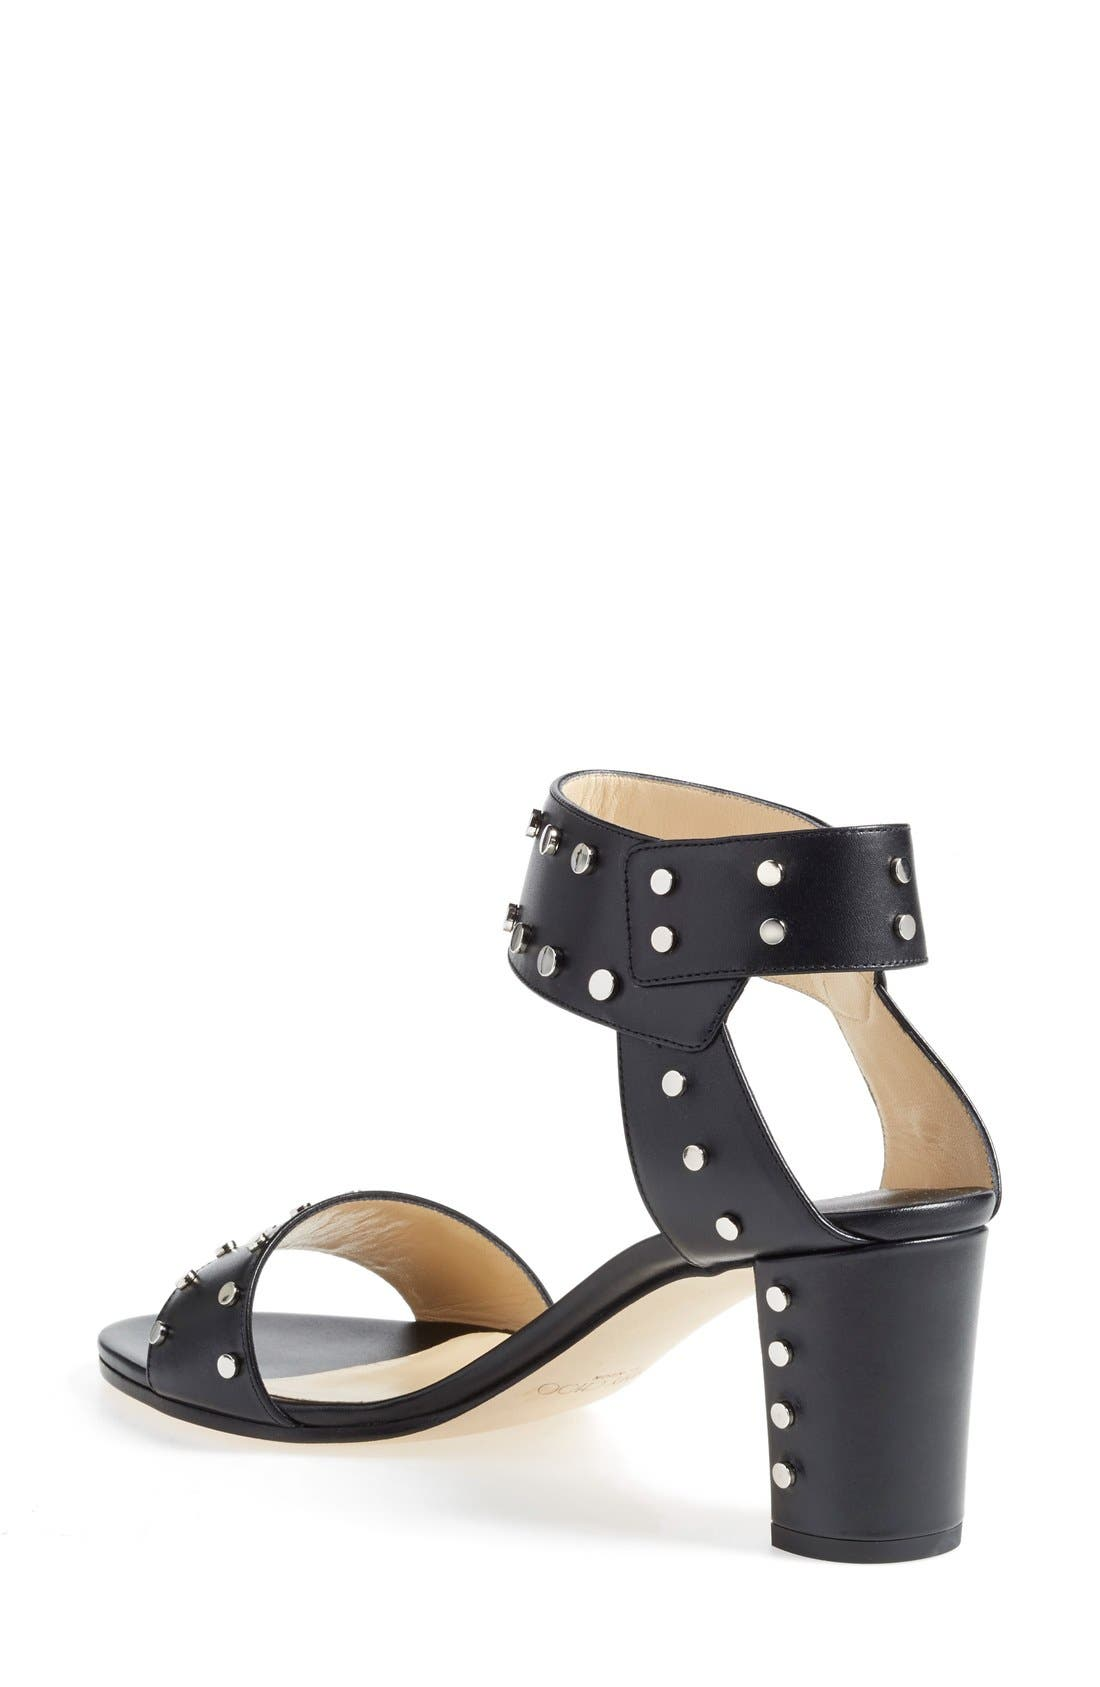 'Veto' Studded Sandal,                             Alternate thumbnail 2, color,                             001